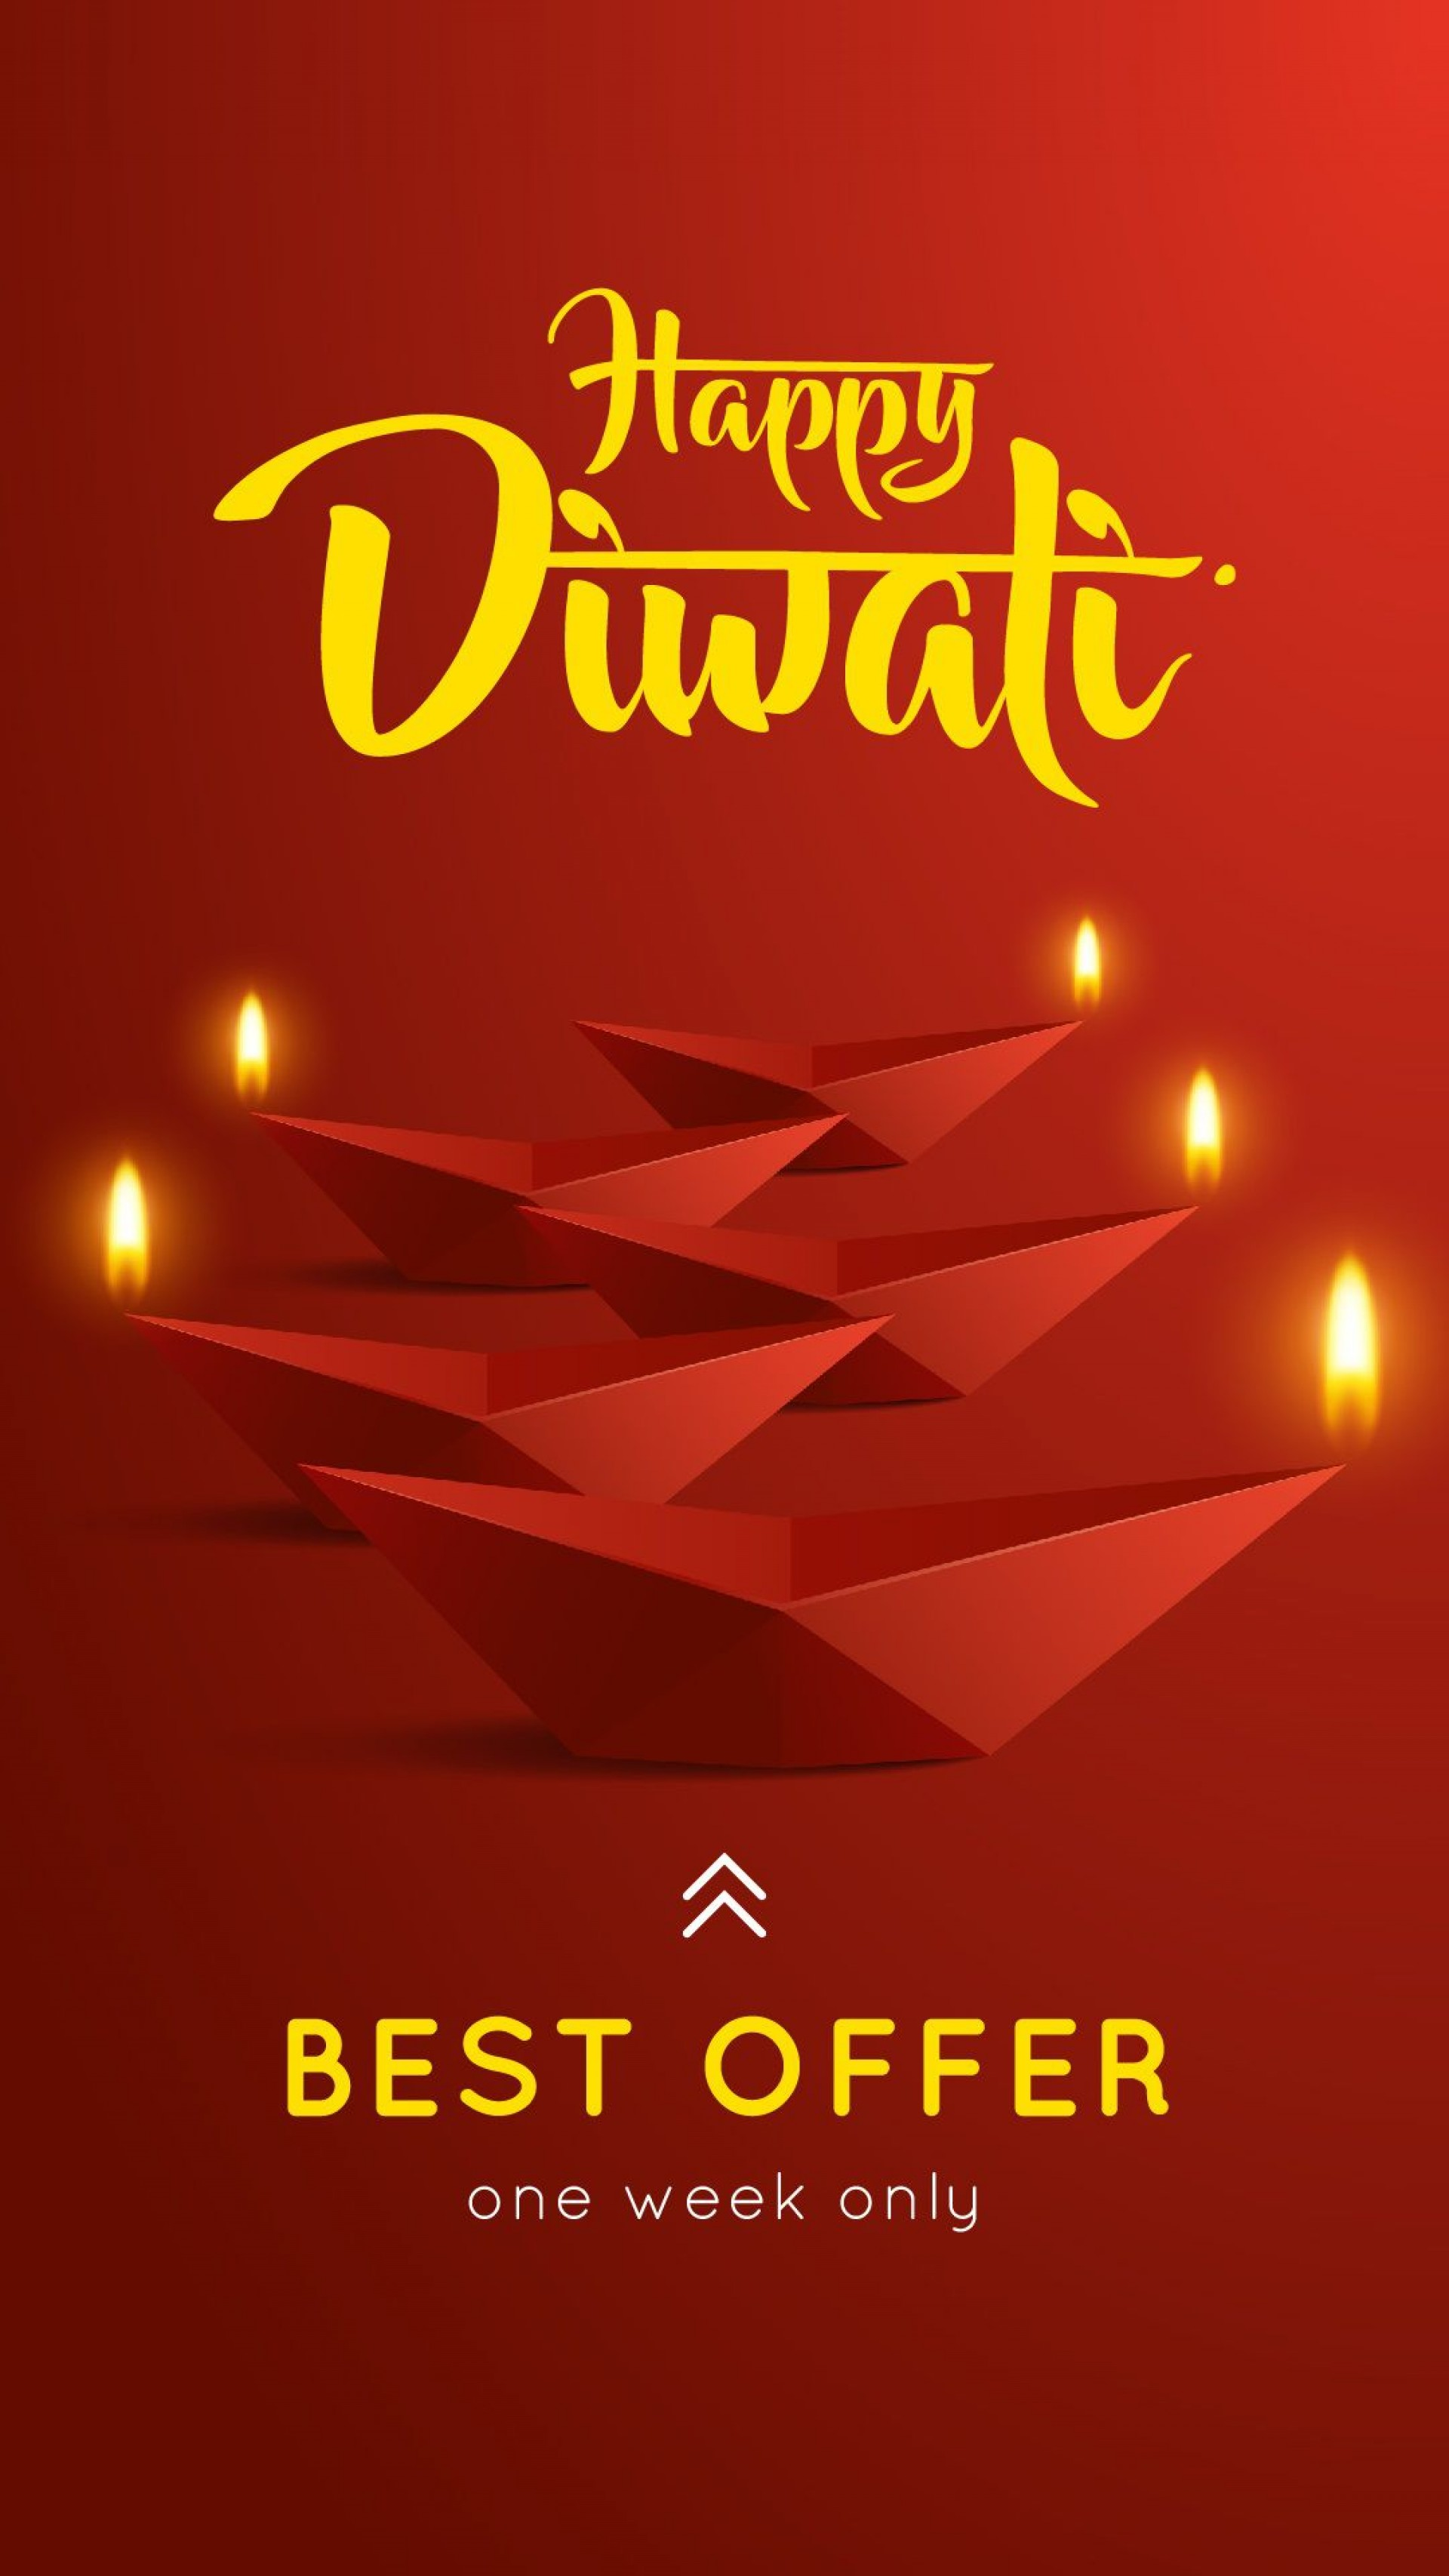 008 Archaicawful Diwali Party Invite Template Free High Resolution 1920